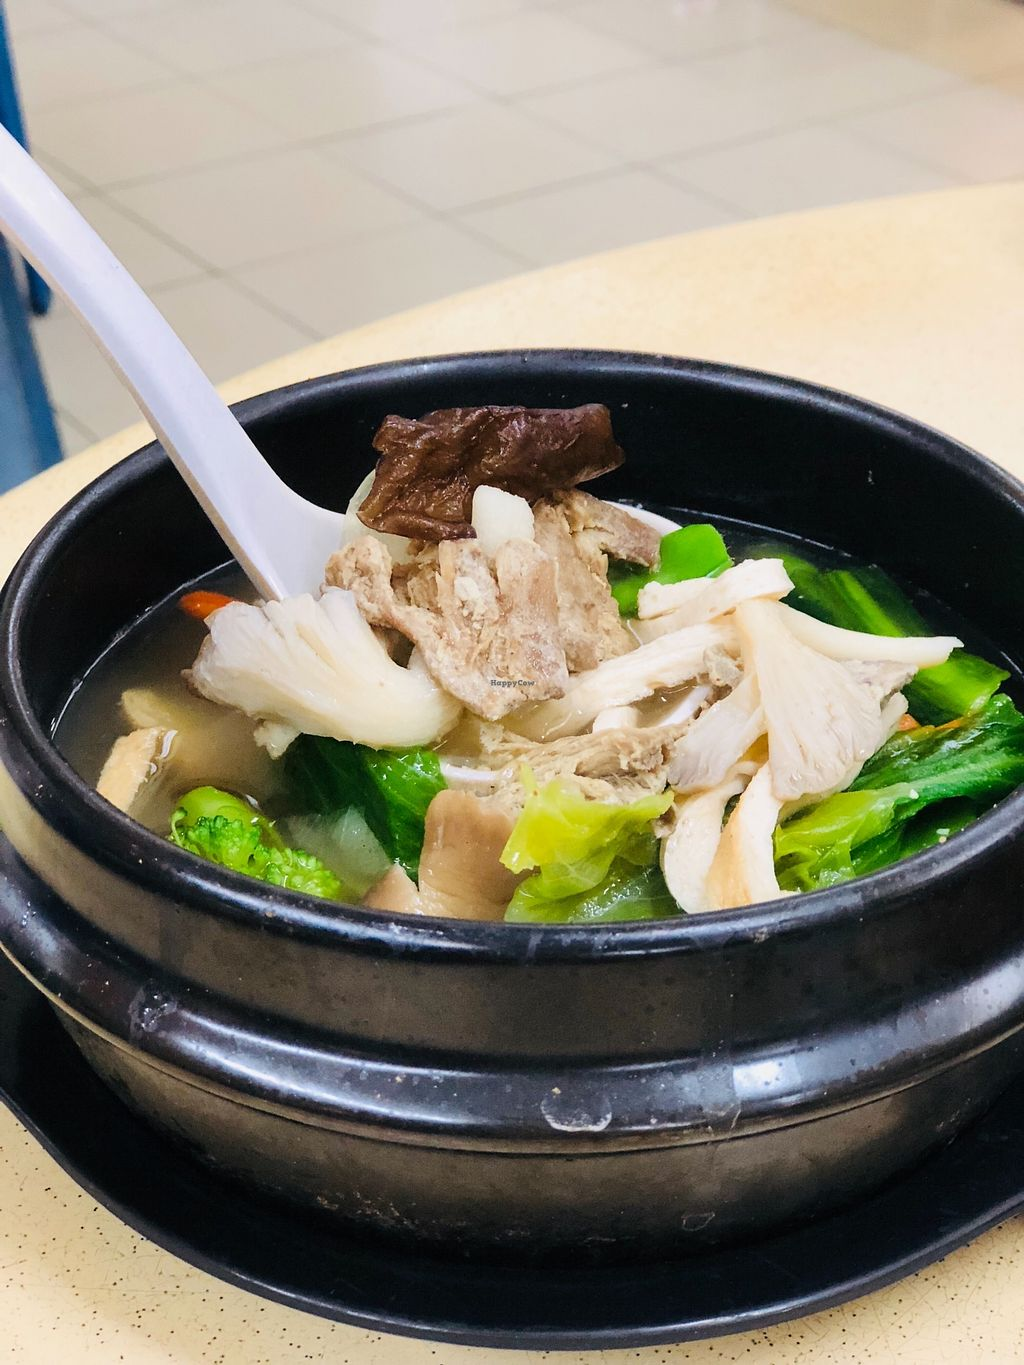 """Photo of Green Lane Vegetarian Food  by <a href=""""/members/profile/CherylQuincy"""">CherylQuincy</a> <br/>Herbal vegetable soup <br/> February 9, 2018  - <a href='/contact/abuse/image/79480/356910'>Report</a>"""